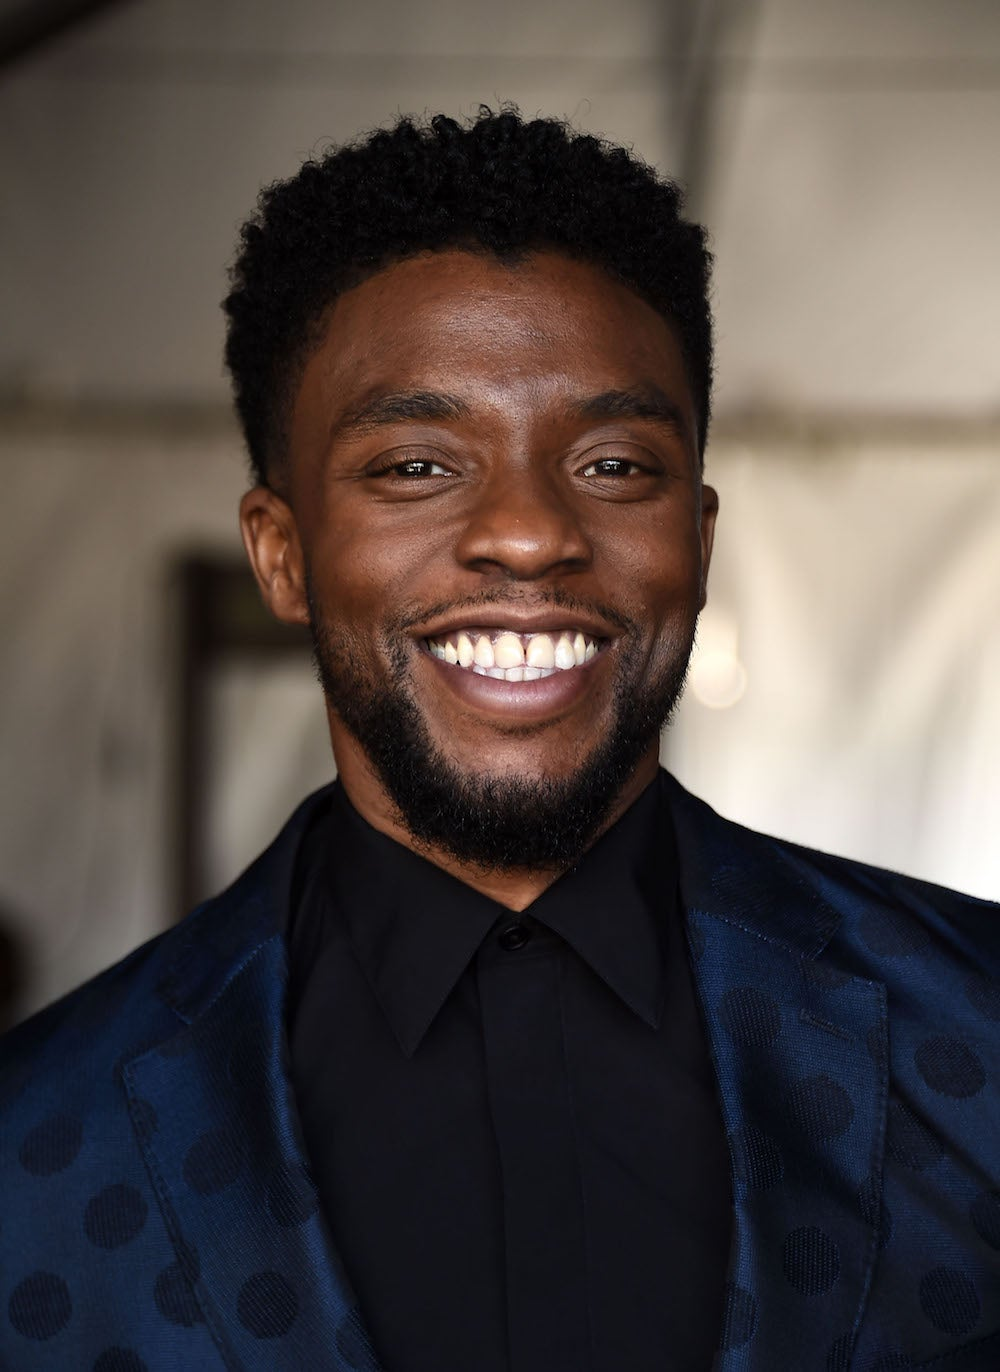 The 42-year old son of father (?) and mother(?) Chadwick Boseman in 2020 photo. Chadwick Boseman earned a million dollar salary - leaving the net worth at million in 2020